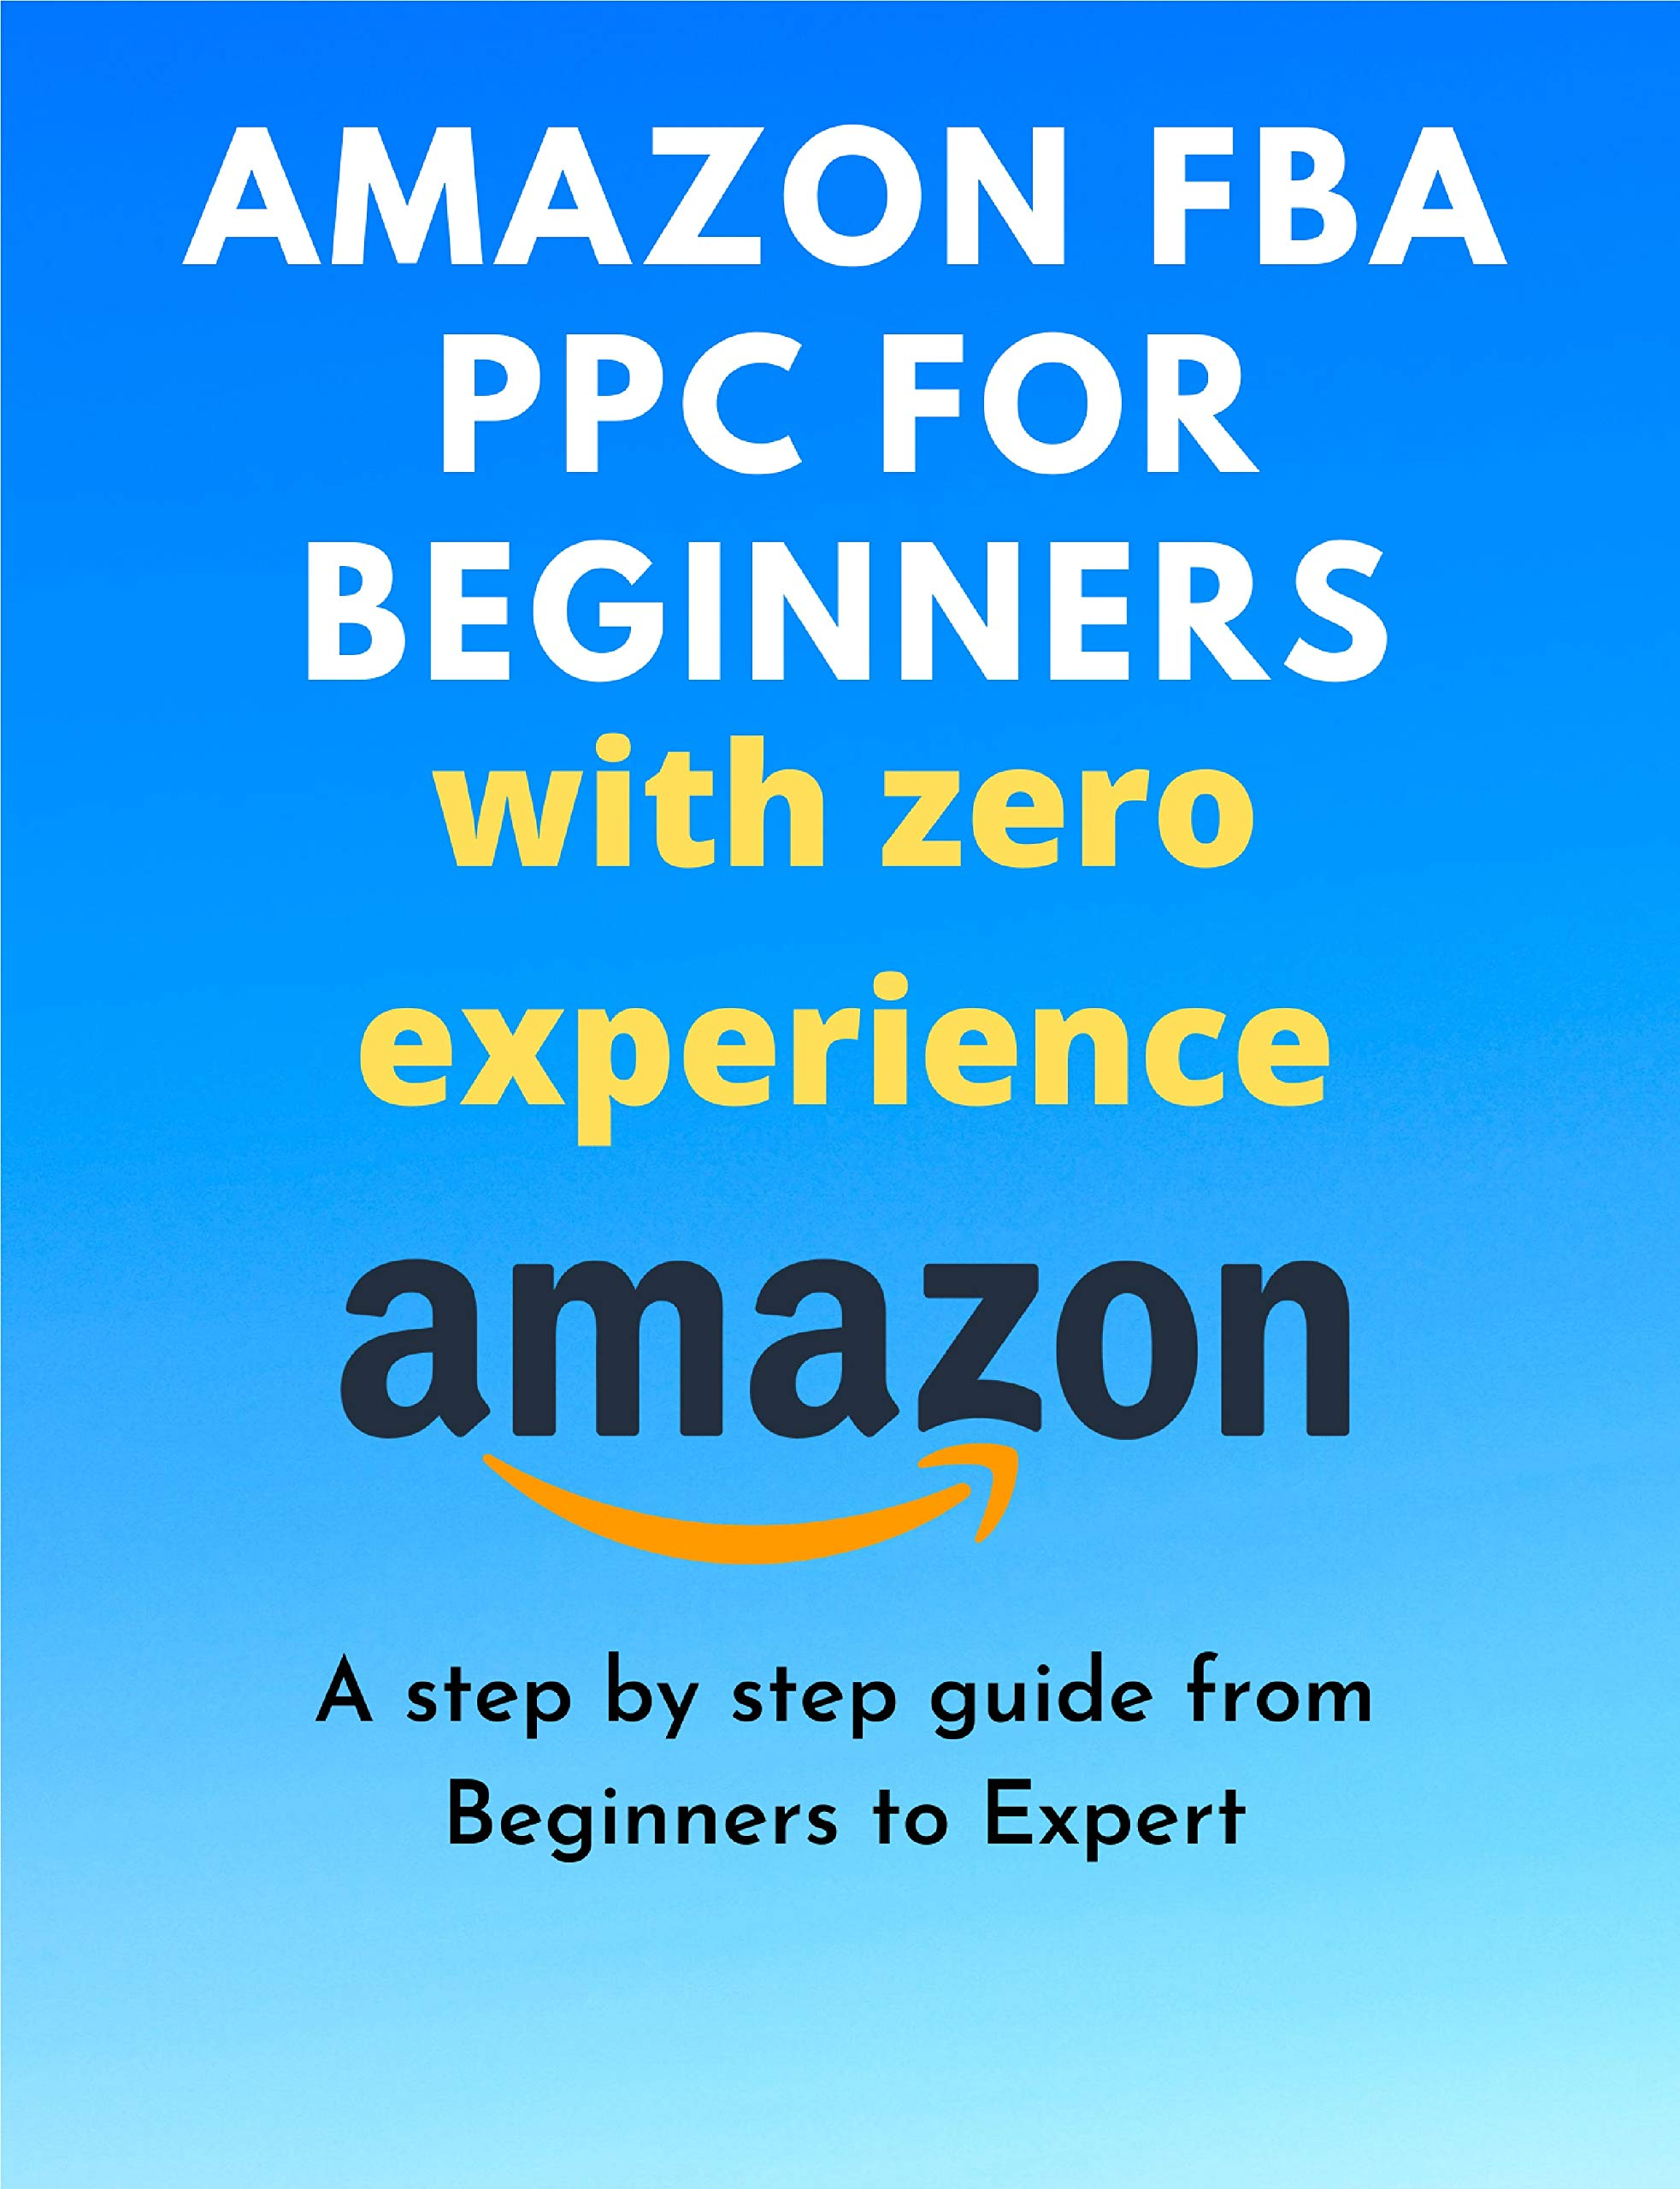 Amazon FBA PPC for beginners with zero experience : A step by step guide from beginners to expert (Malayalam Edition)